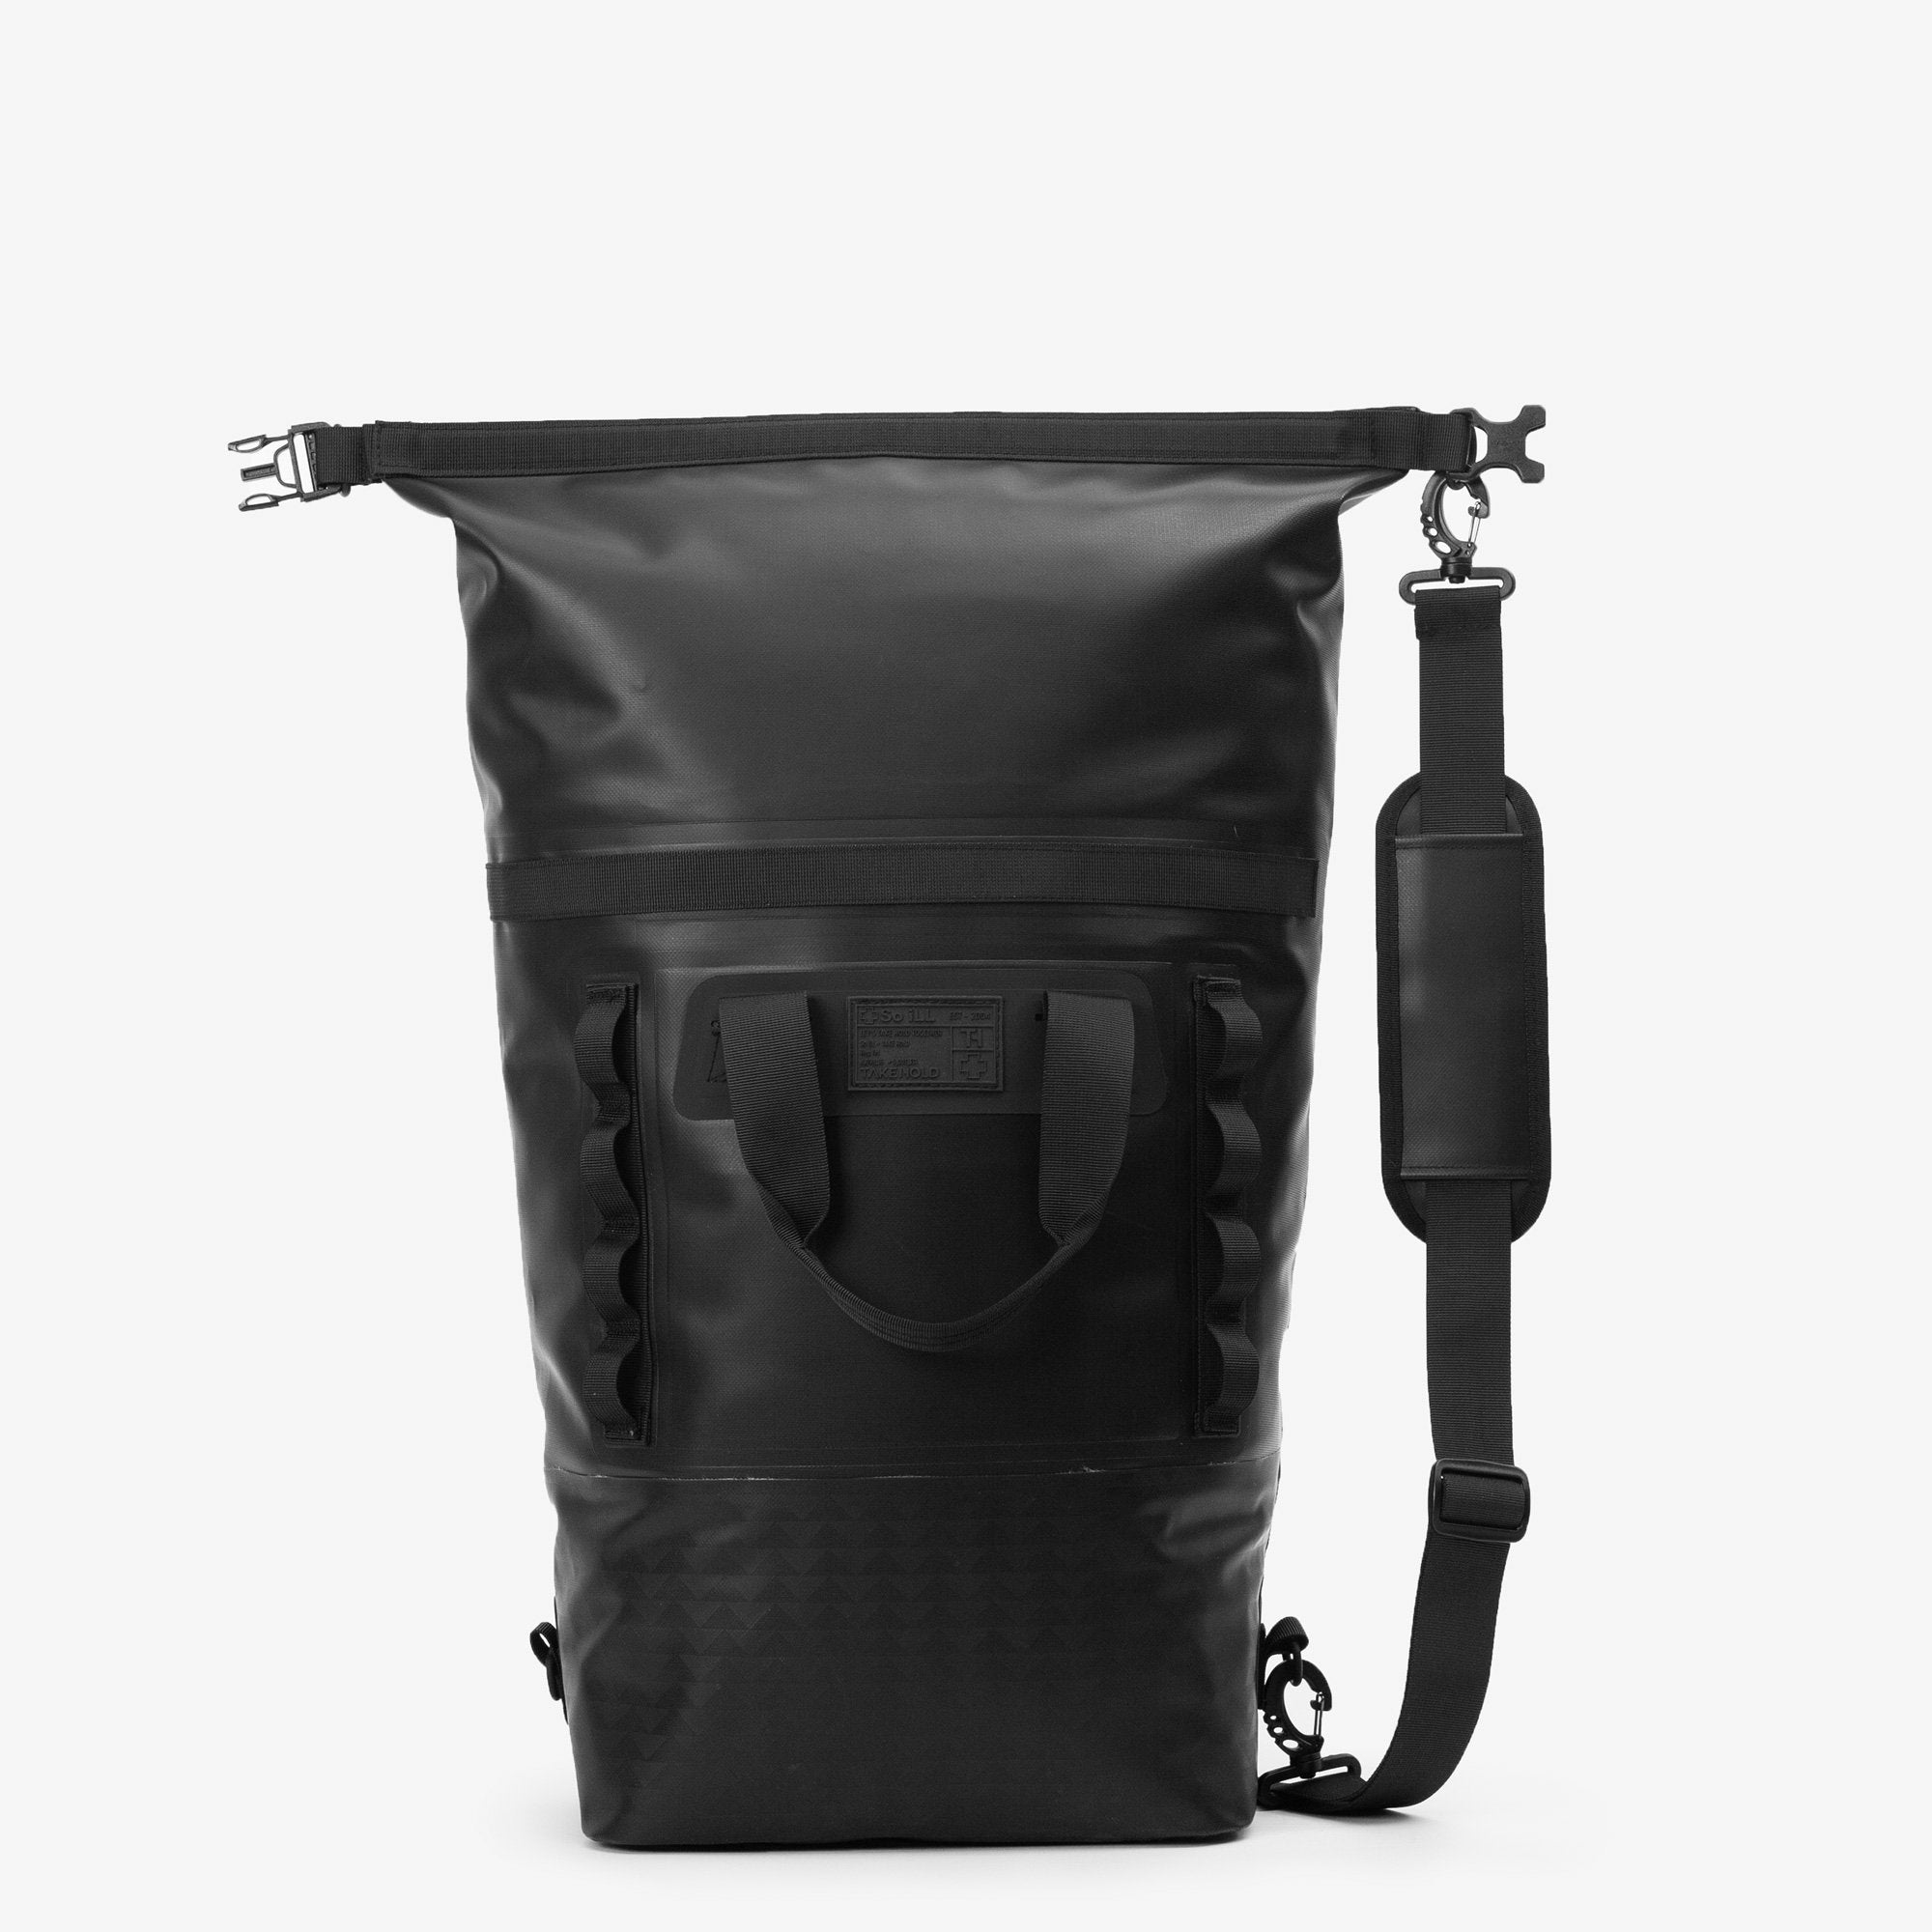 So iLL On the Roam Dirt Bag 25L Rock Climbing Kit Bag – Black